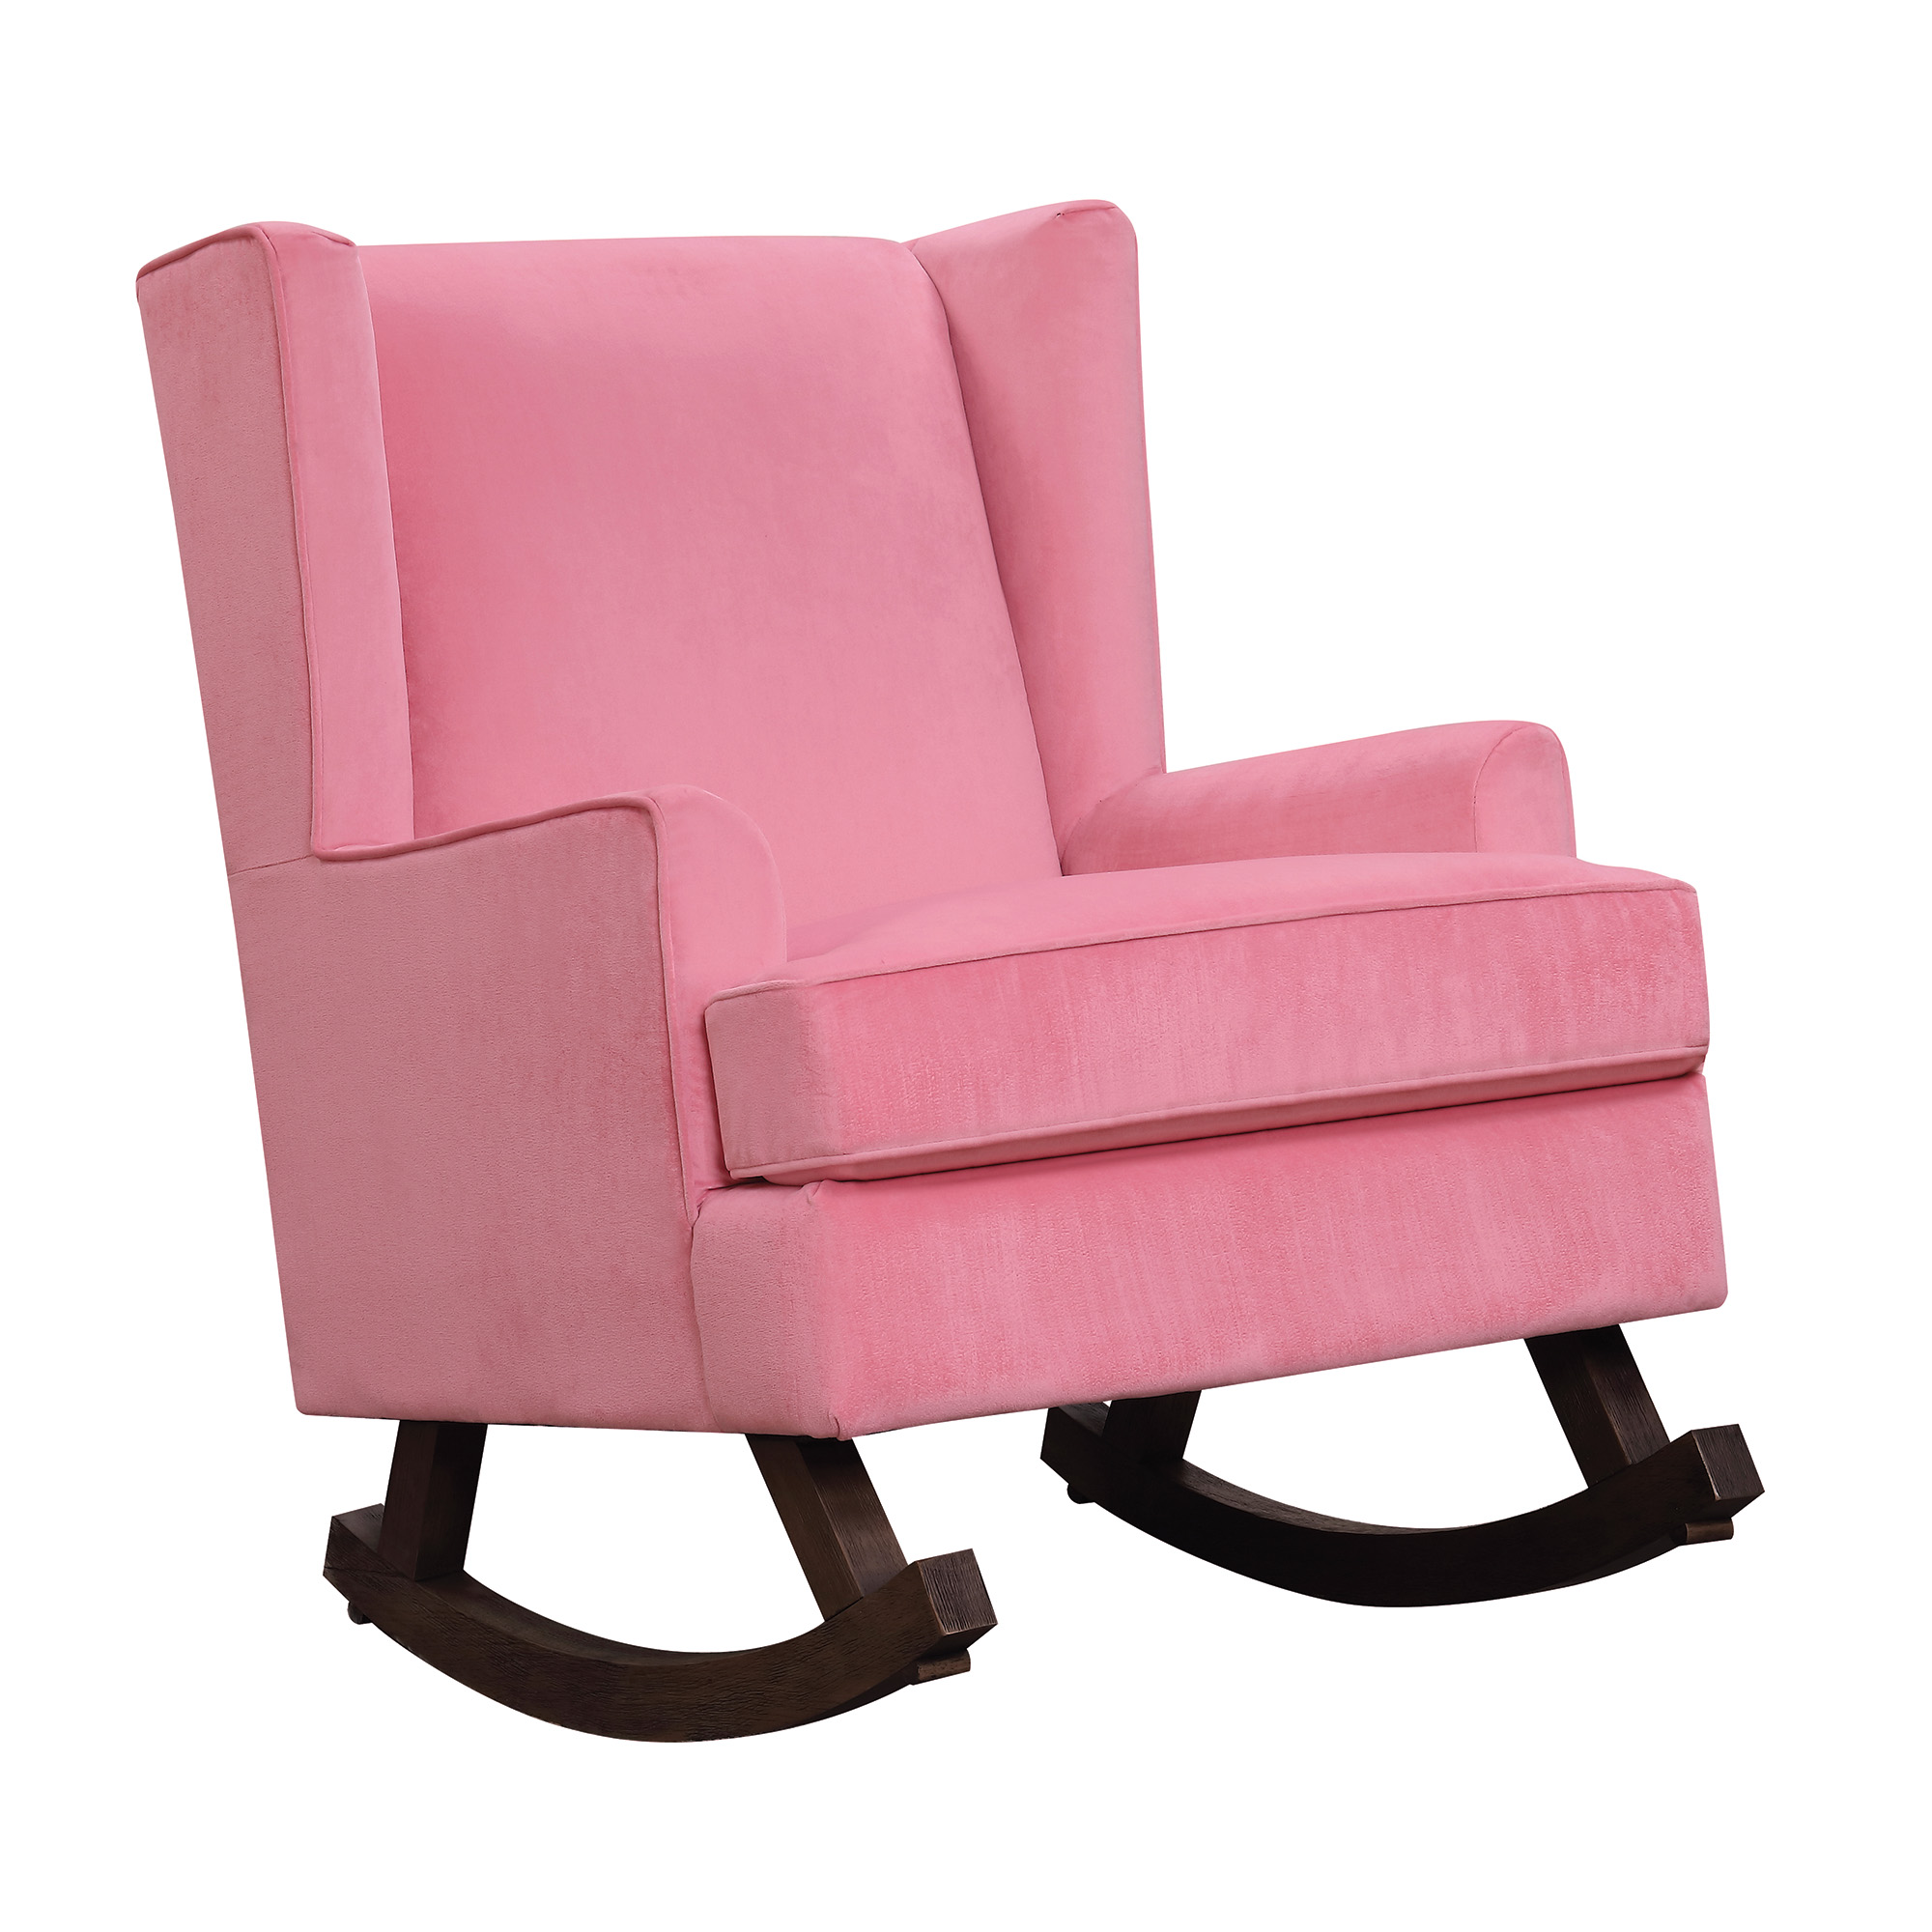 Picket House Furnishings Lily Upholstered Glider